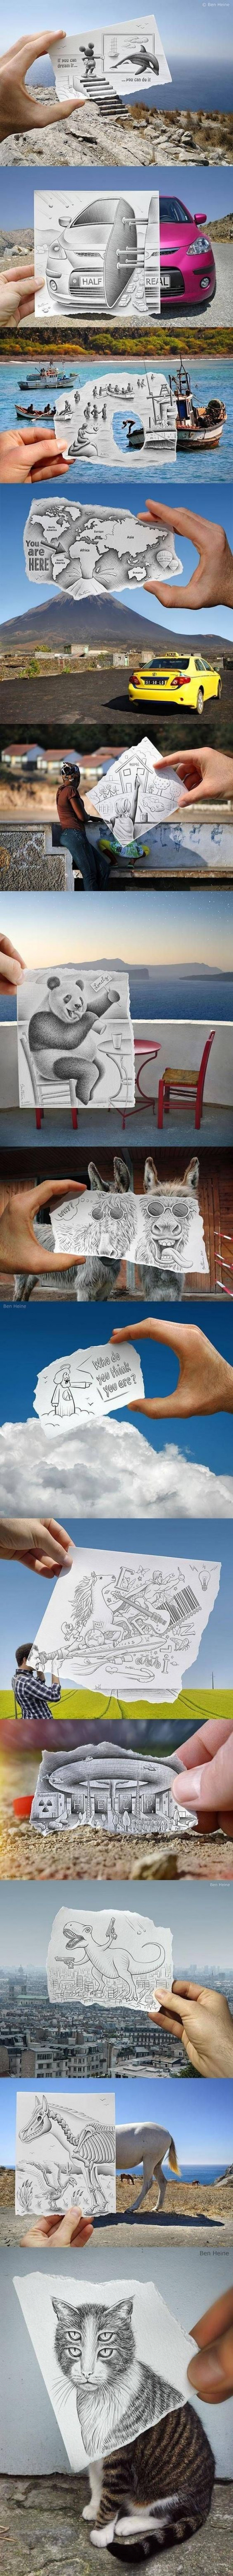 Artist Combines Drawings And Real Life To Make You Chuckle